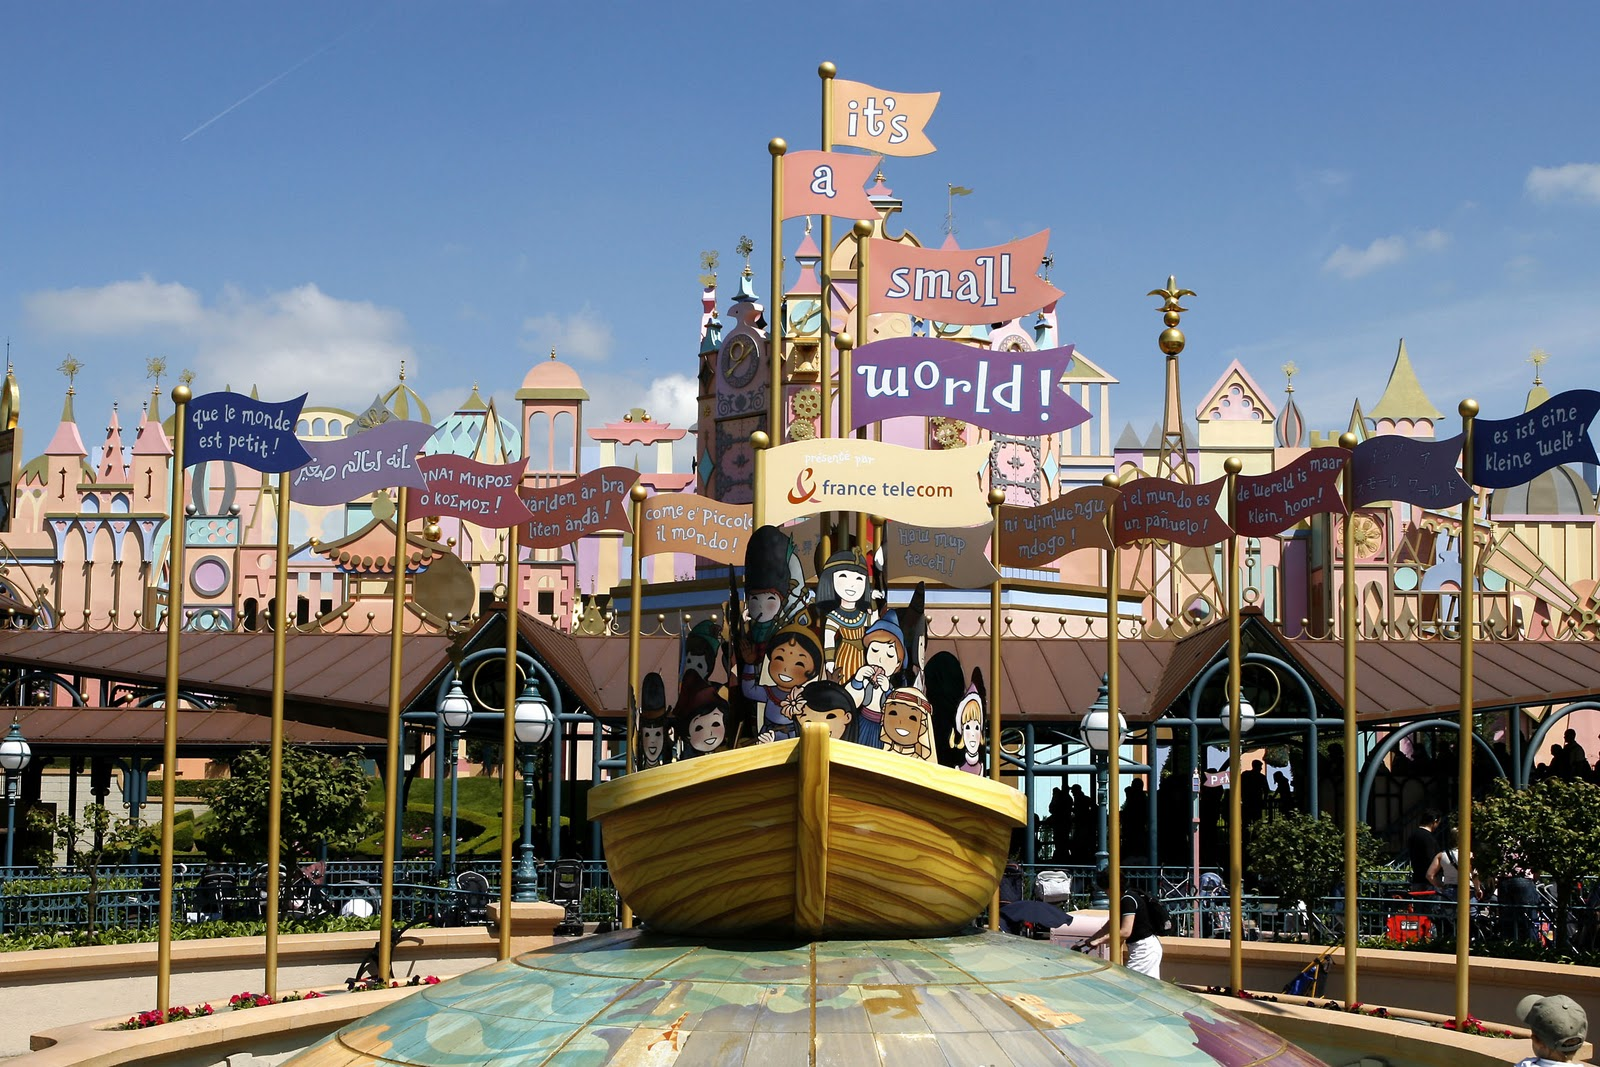 'it's a small world